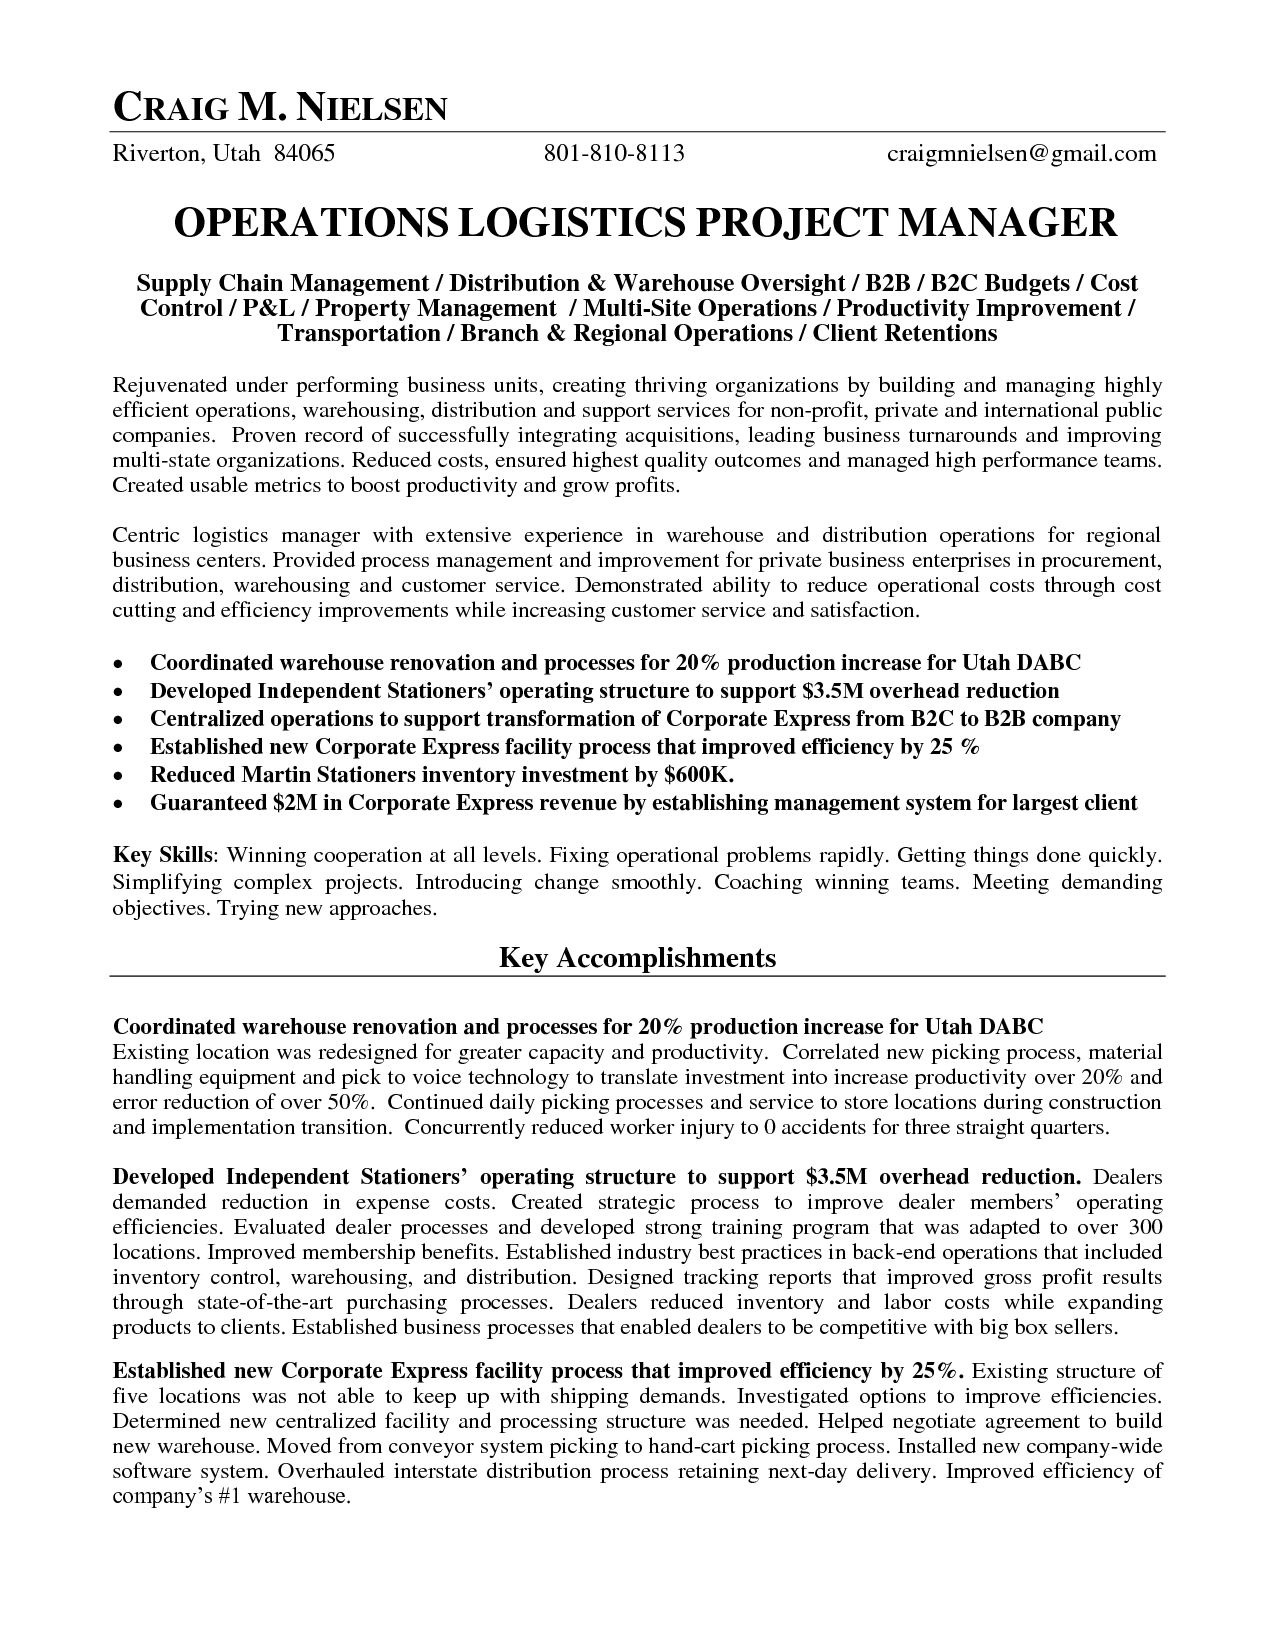 Logistics Operations Manager Resume | Operations Logistics Project ...